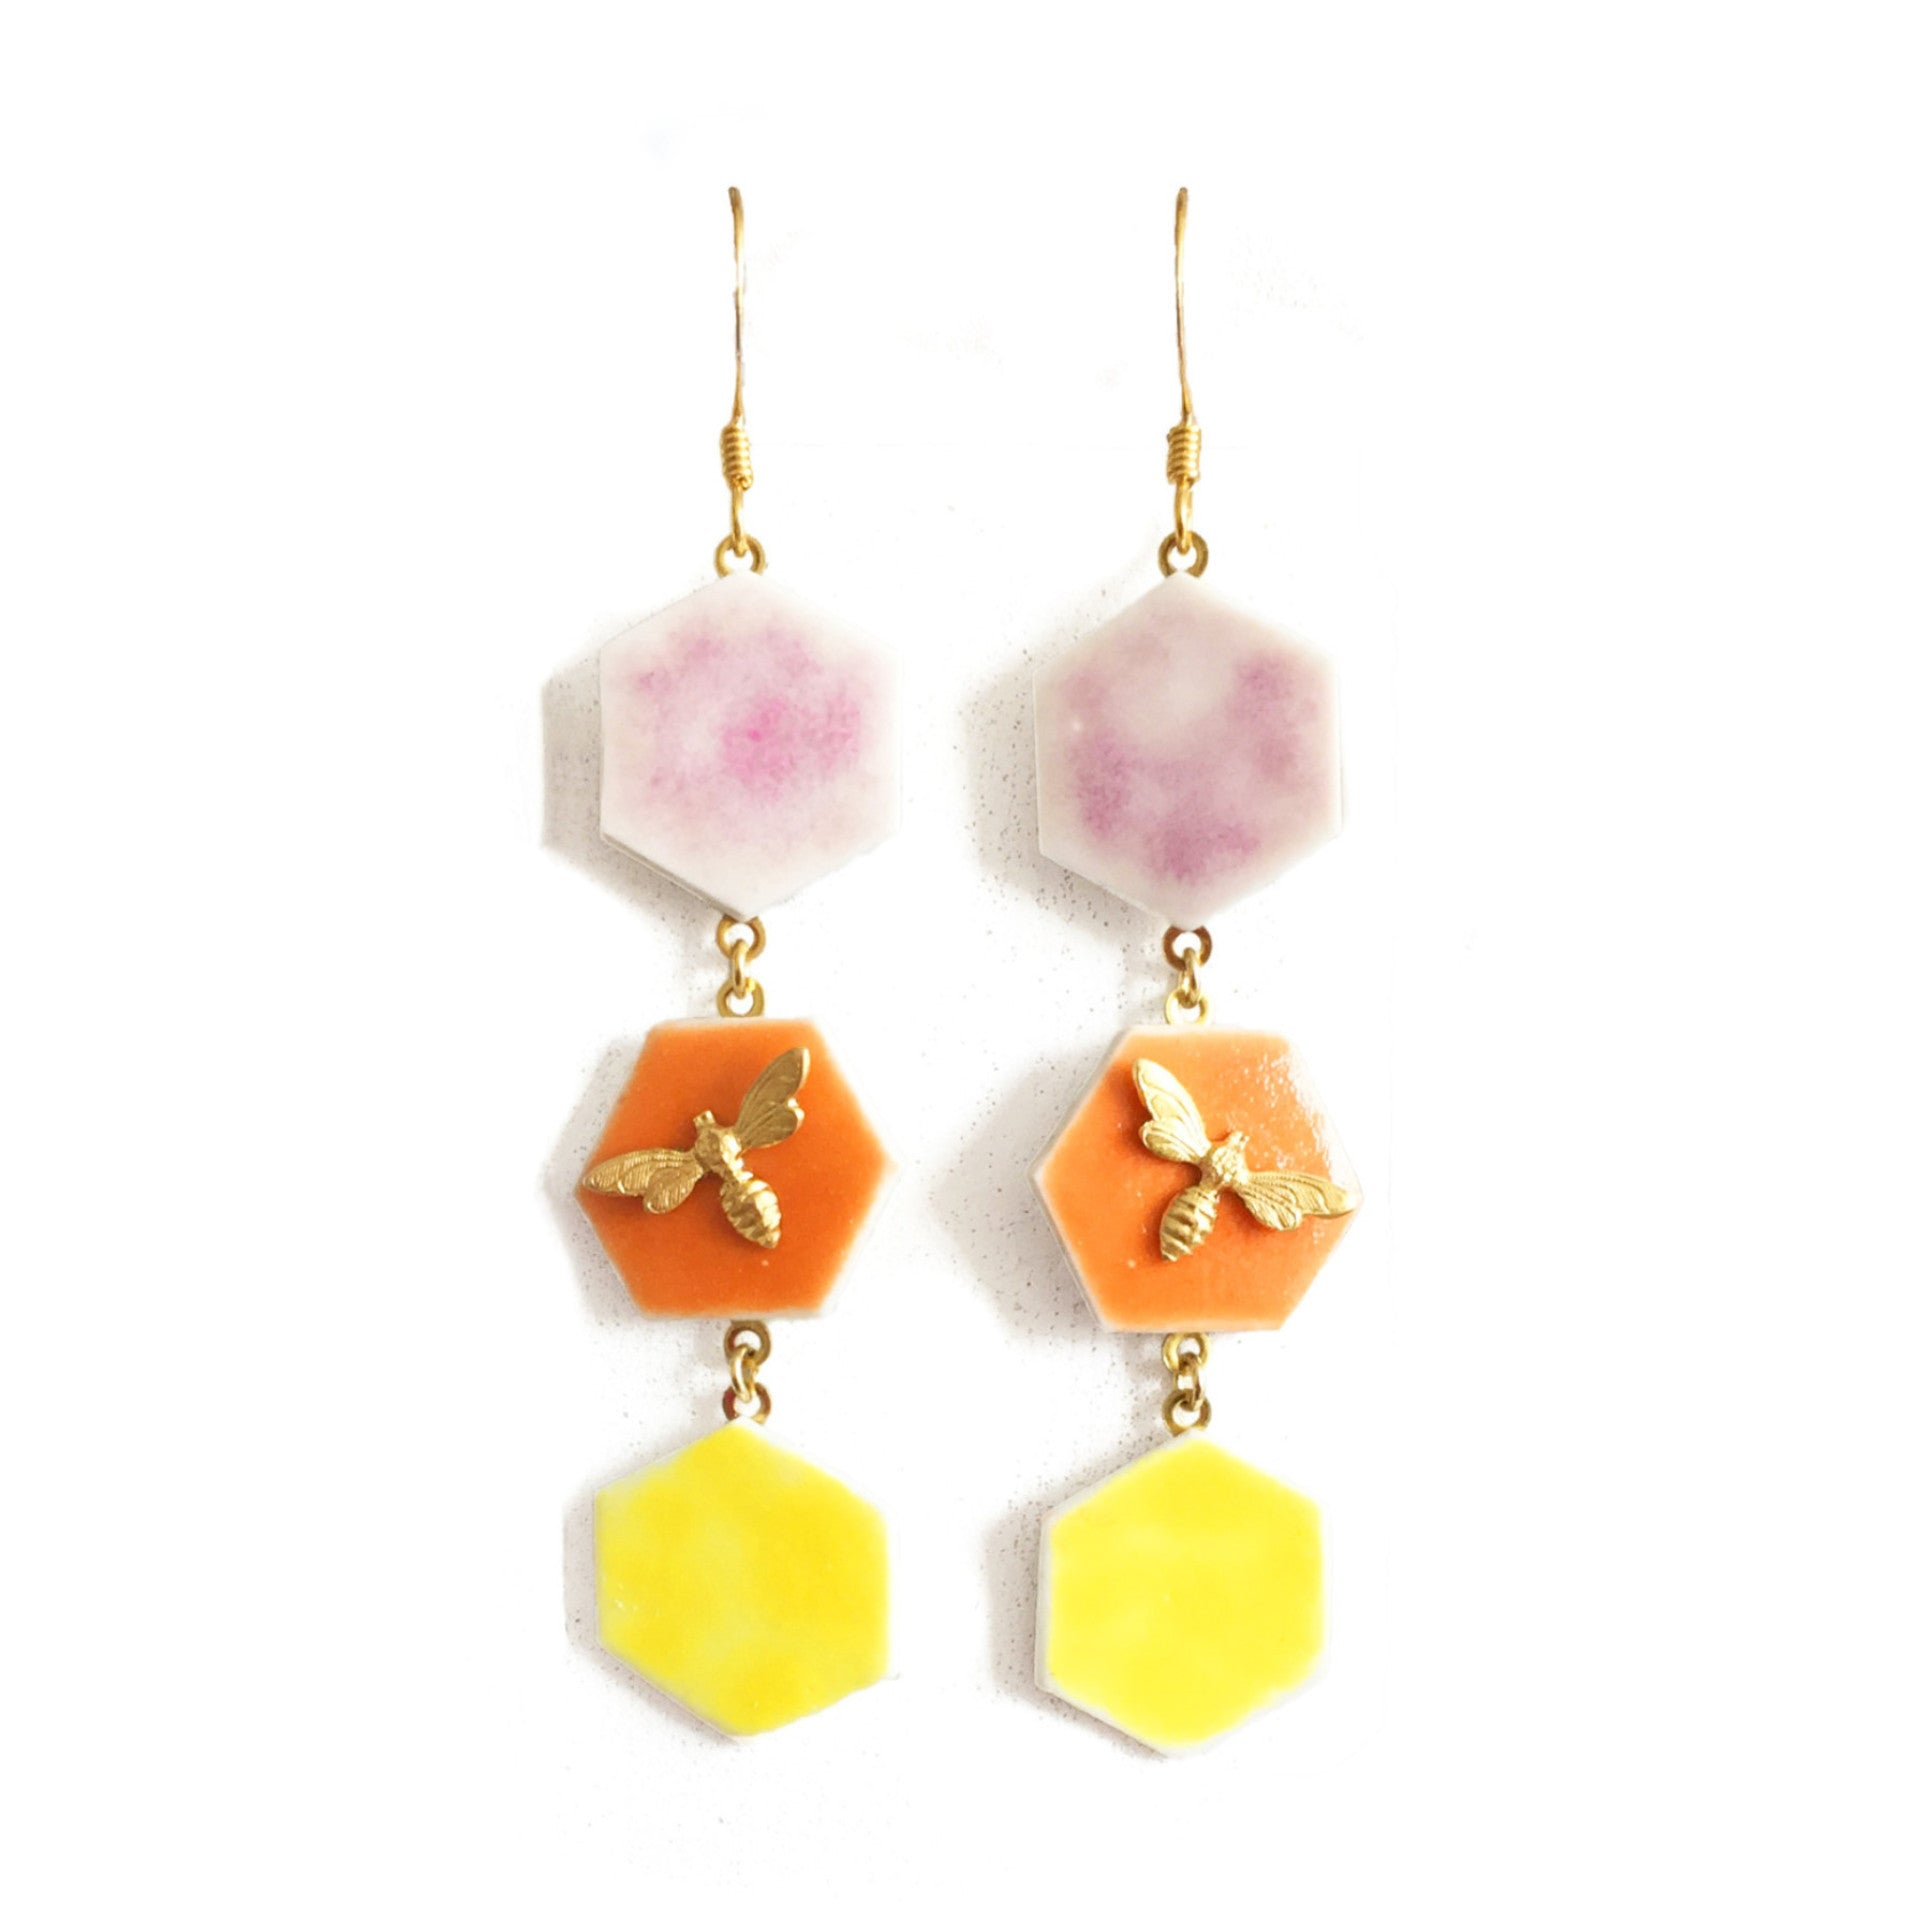 ABEJA EN CERÁMICA EARRINGS